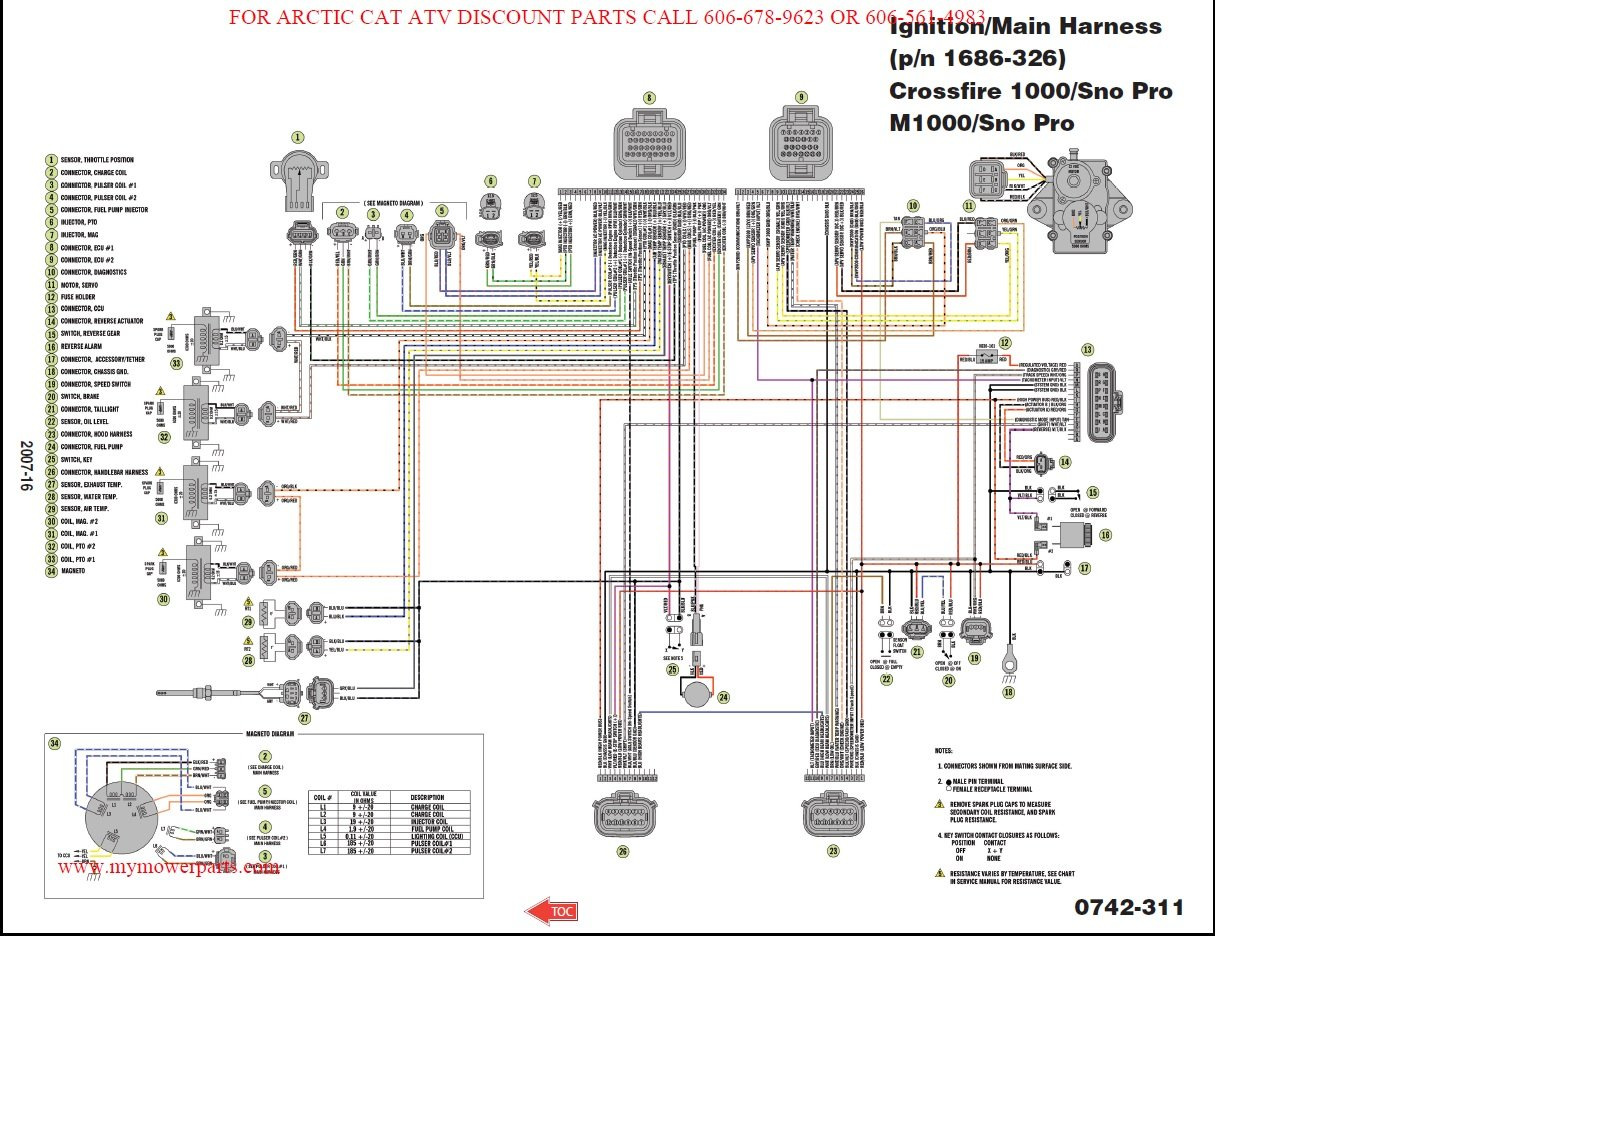 hight resolution of arctic cat wiring schematic wiring diagram technicarctic cat wiring schematic